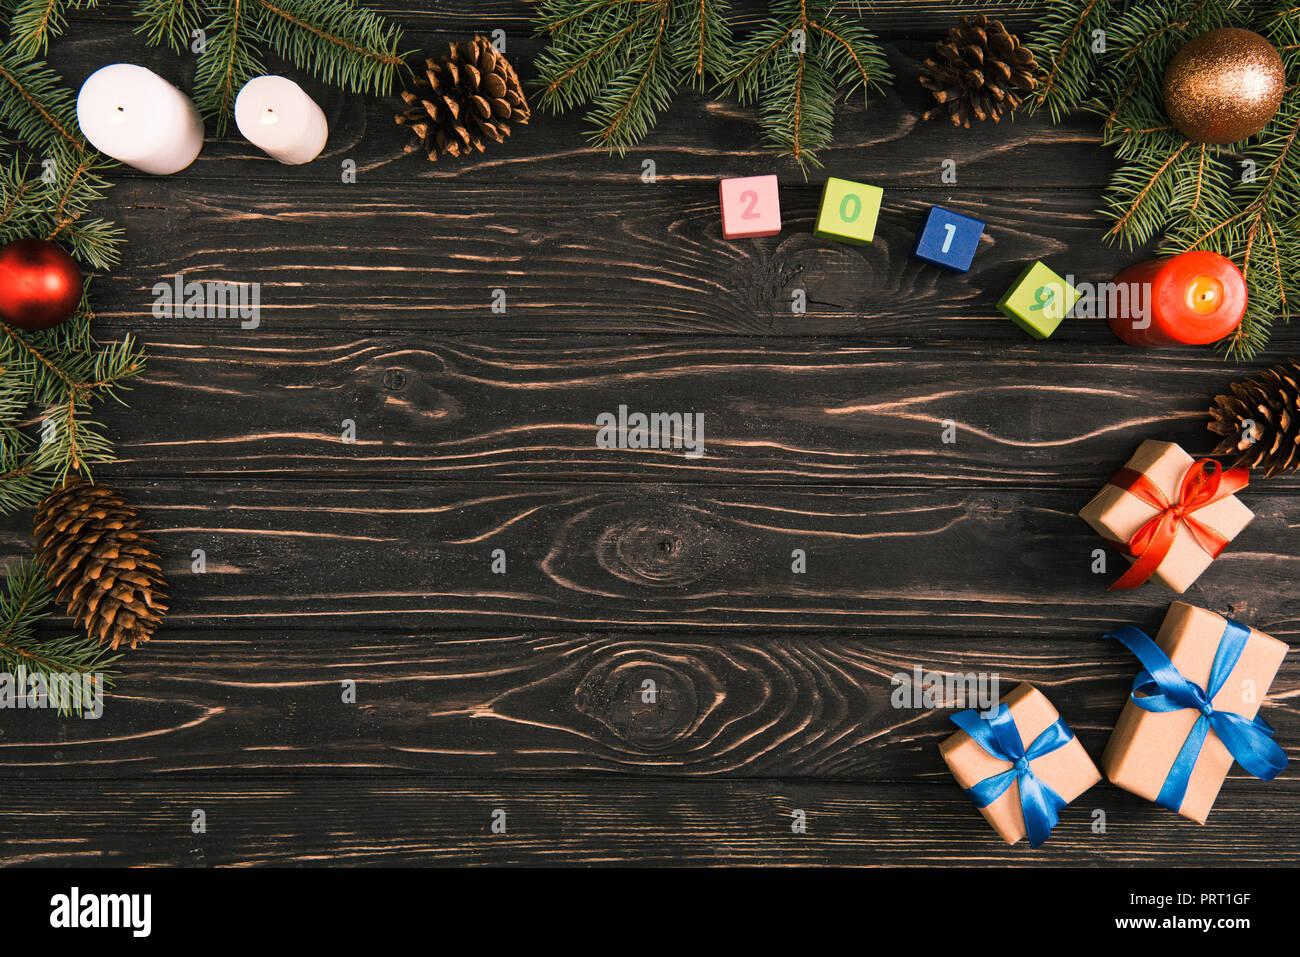 top view of 2019 symbol on cubes christmas gifts candles and fir twigs with